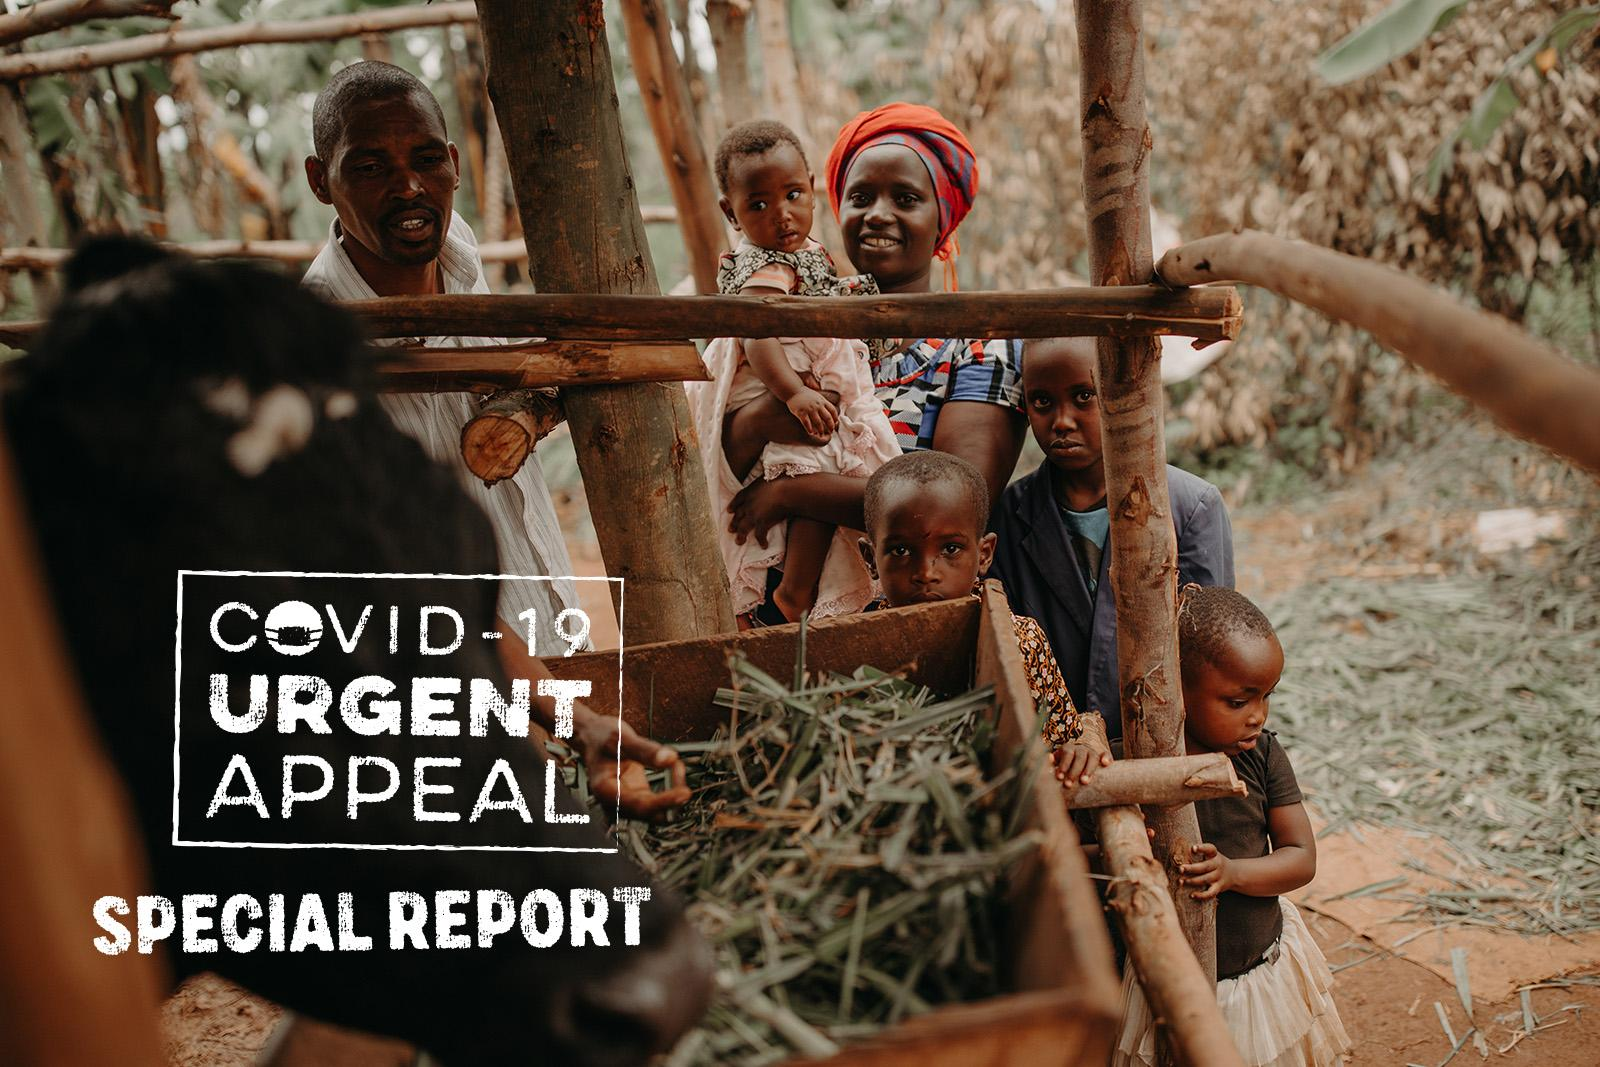 Covid-19 Urgent Appeal Special Report